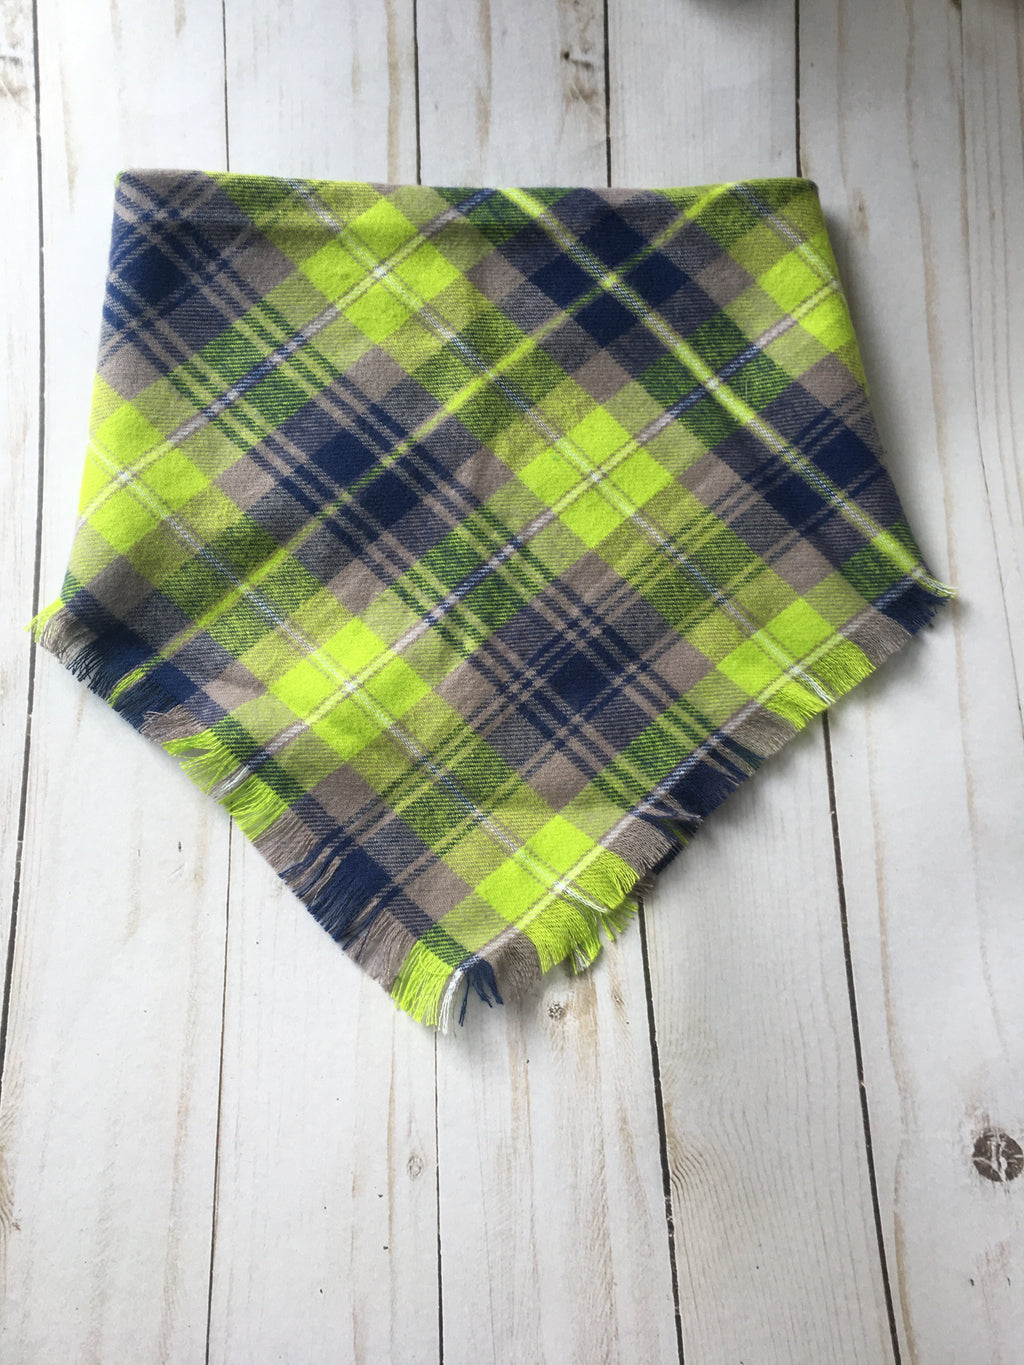 Doggie and me: Tennis ball green plaid blanket scarf